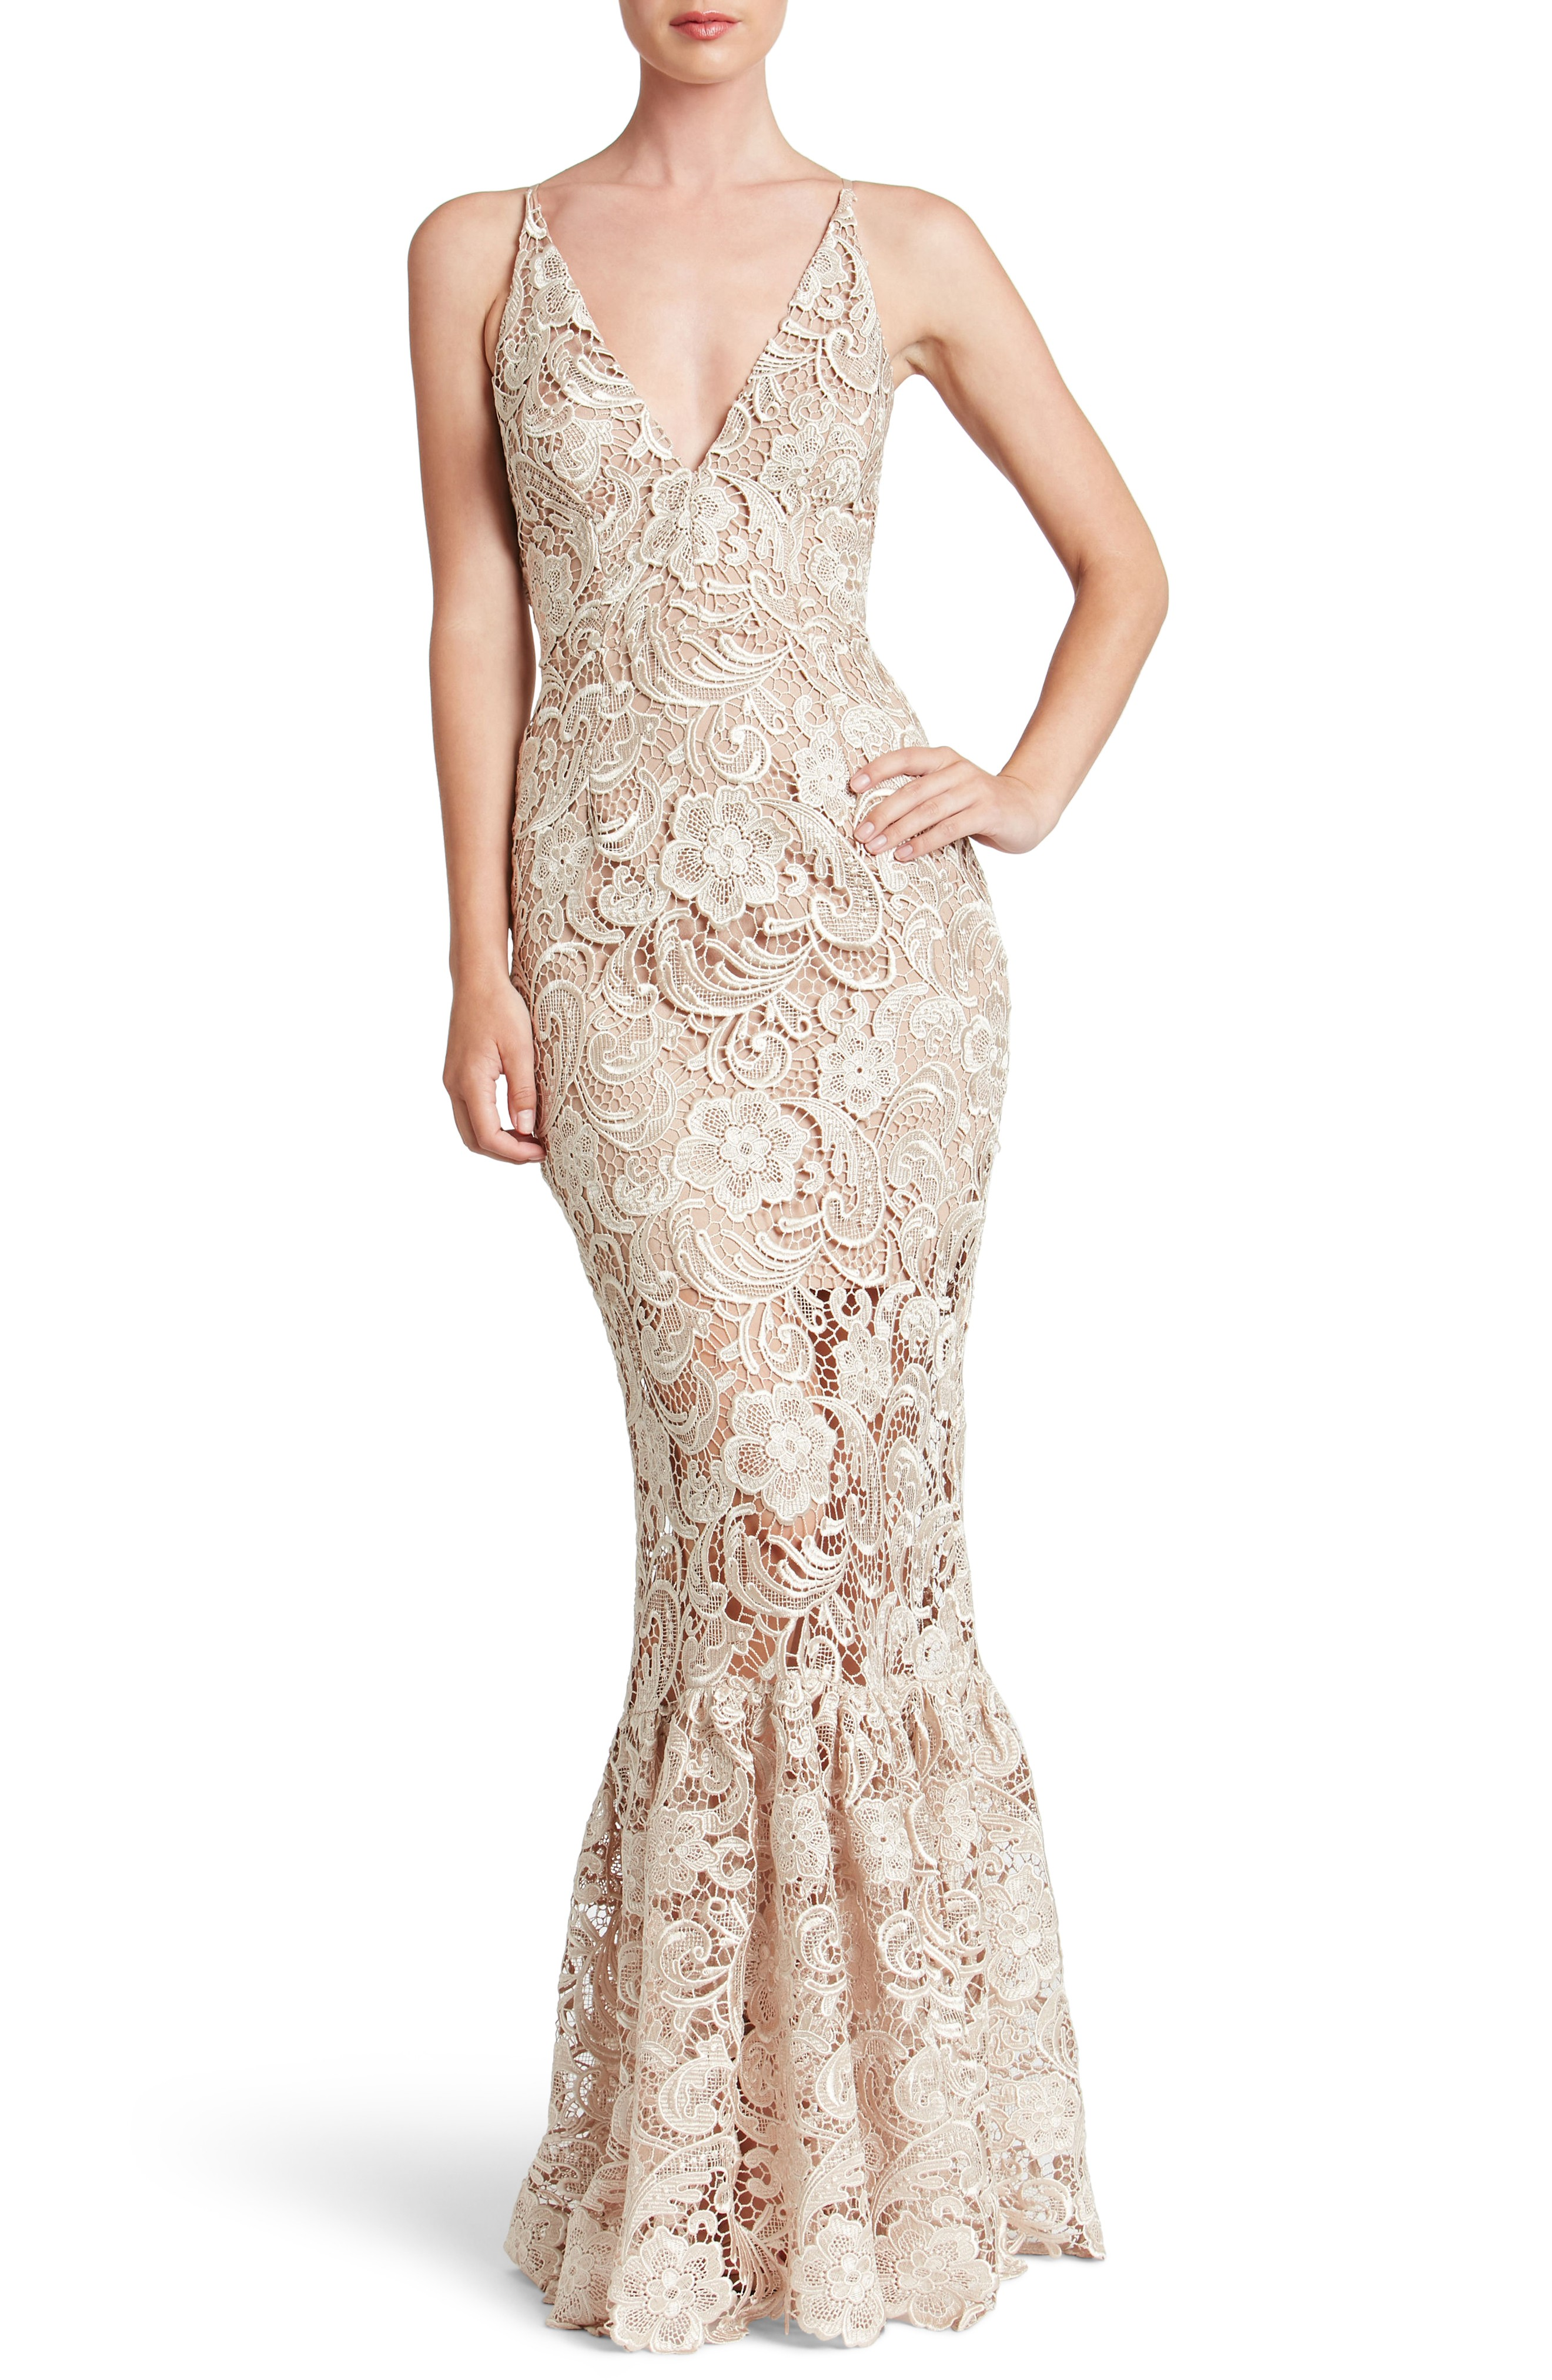 DRESS THE POPULATION Sophia Crochet Lace Mermaid Nude Gown